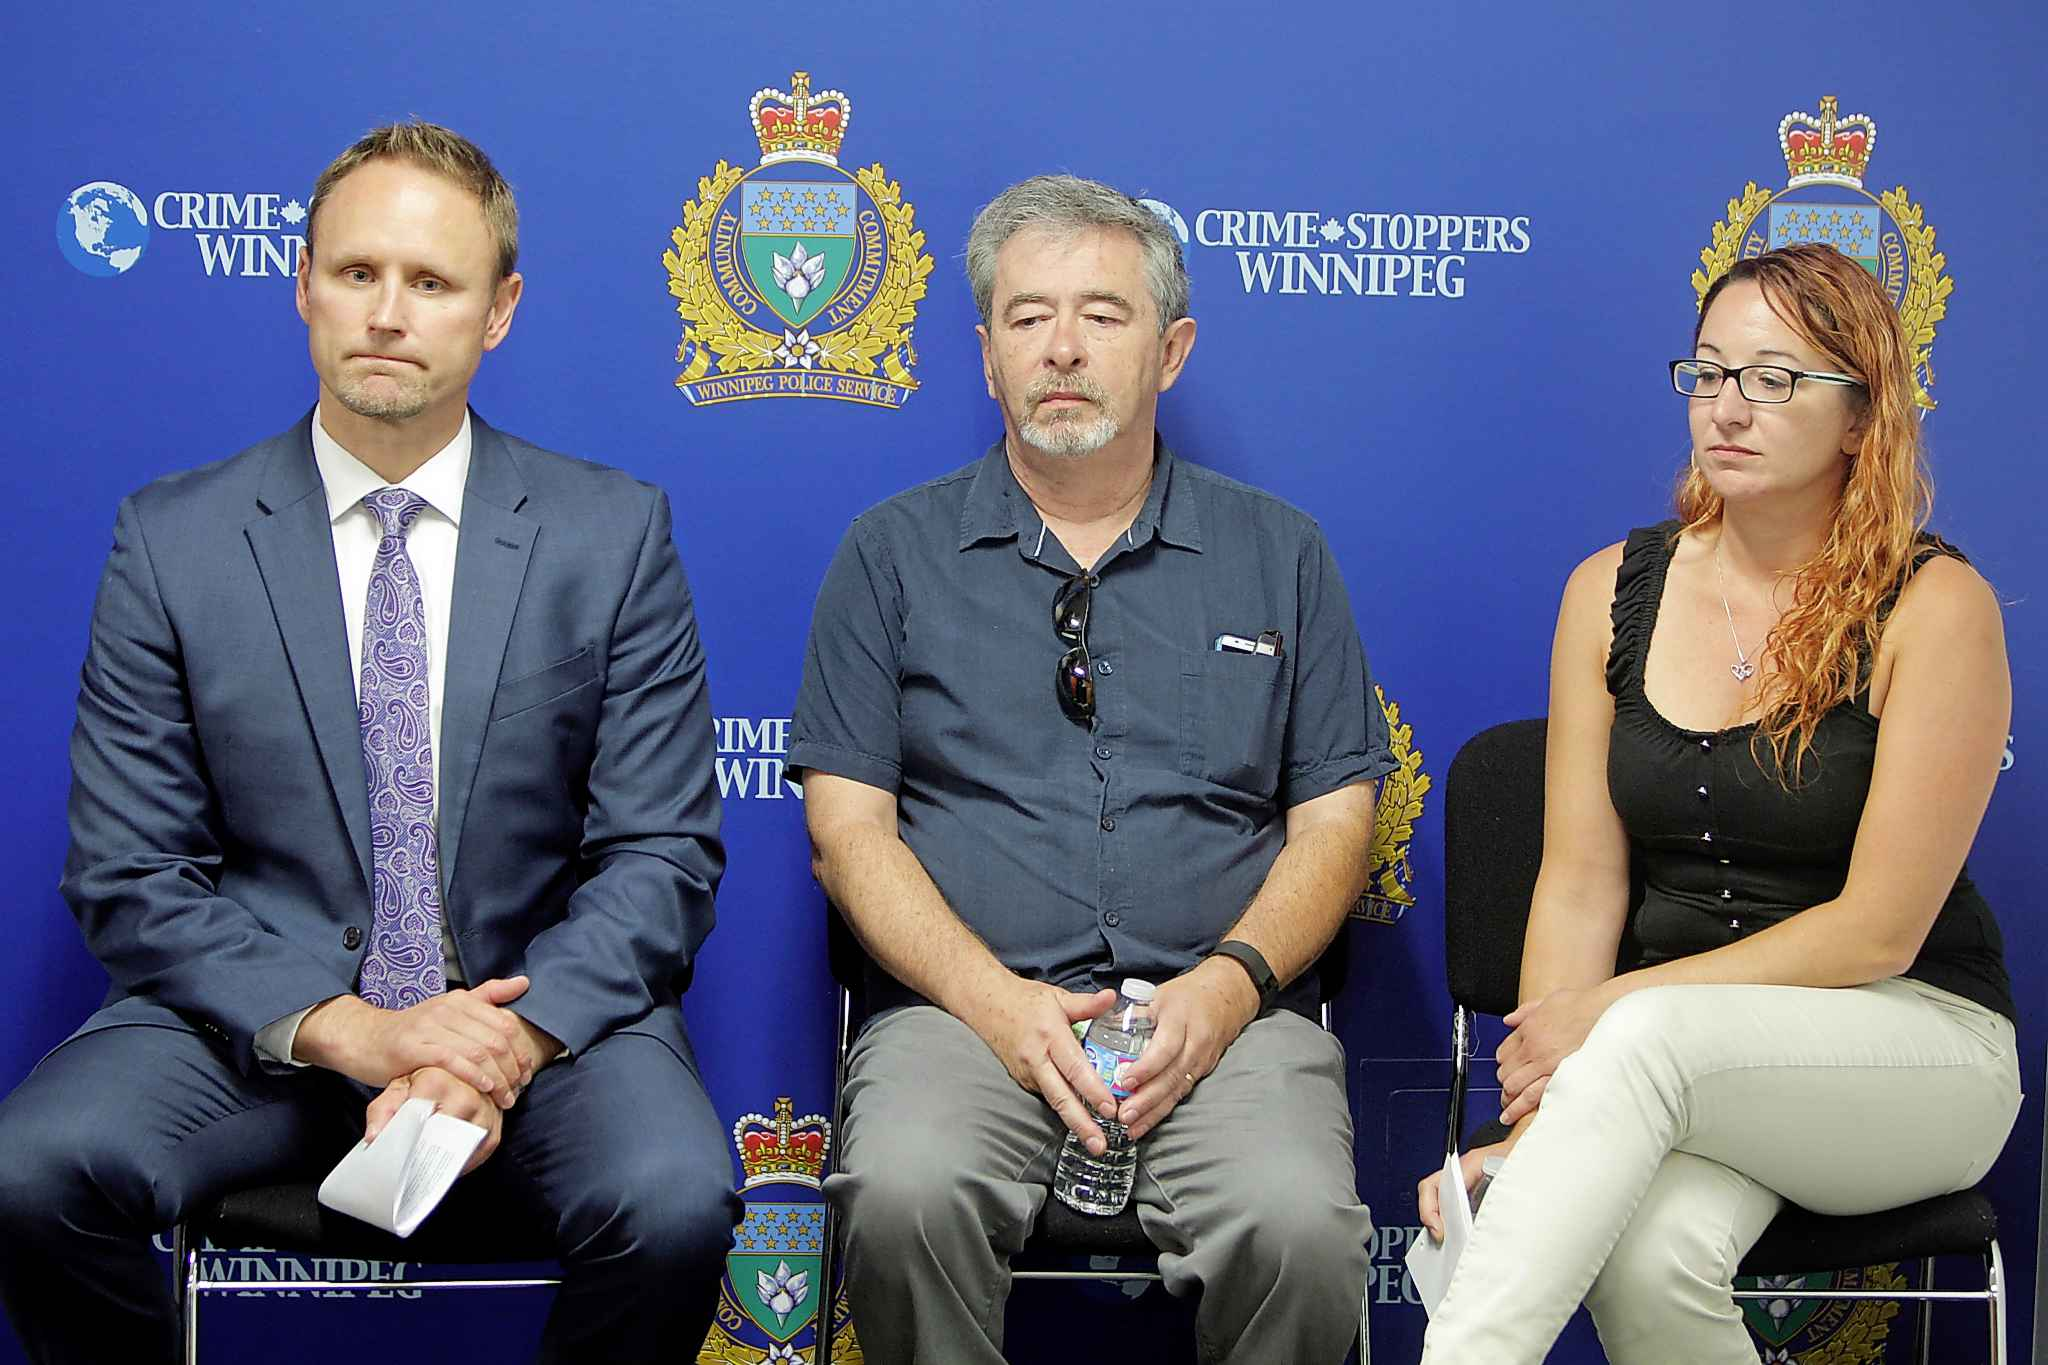 Homicide Sgt. Wes Rommel (from left), Bob Krull (Thelma's husband) and Lisa Besser (Thelma's daughter) at a press conference on the one-year anniversary of Thelma Krull's disappearance. (Boris Minkevich / Winnipeg Free Press files)